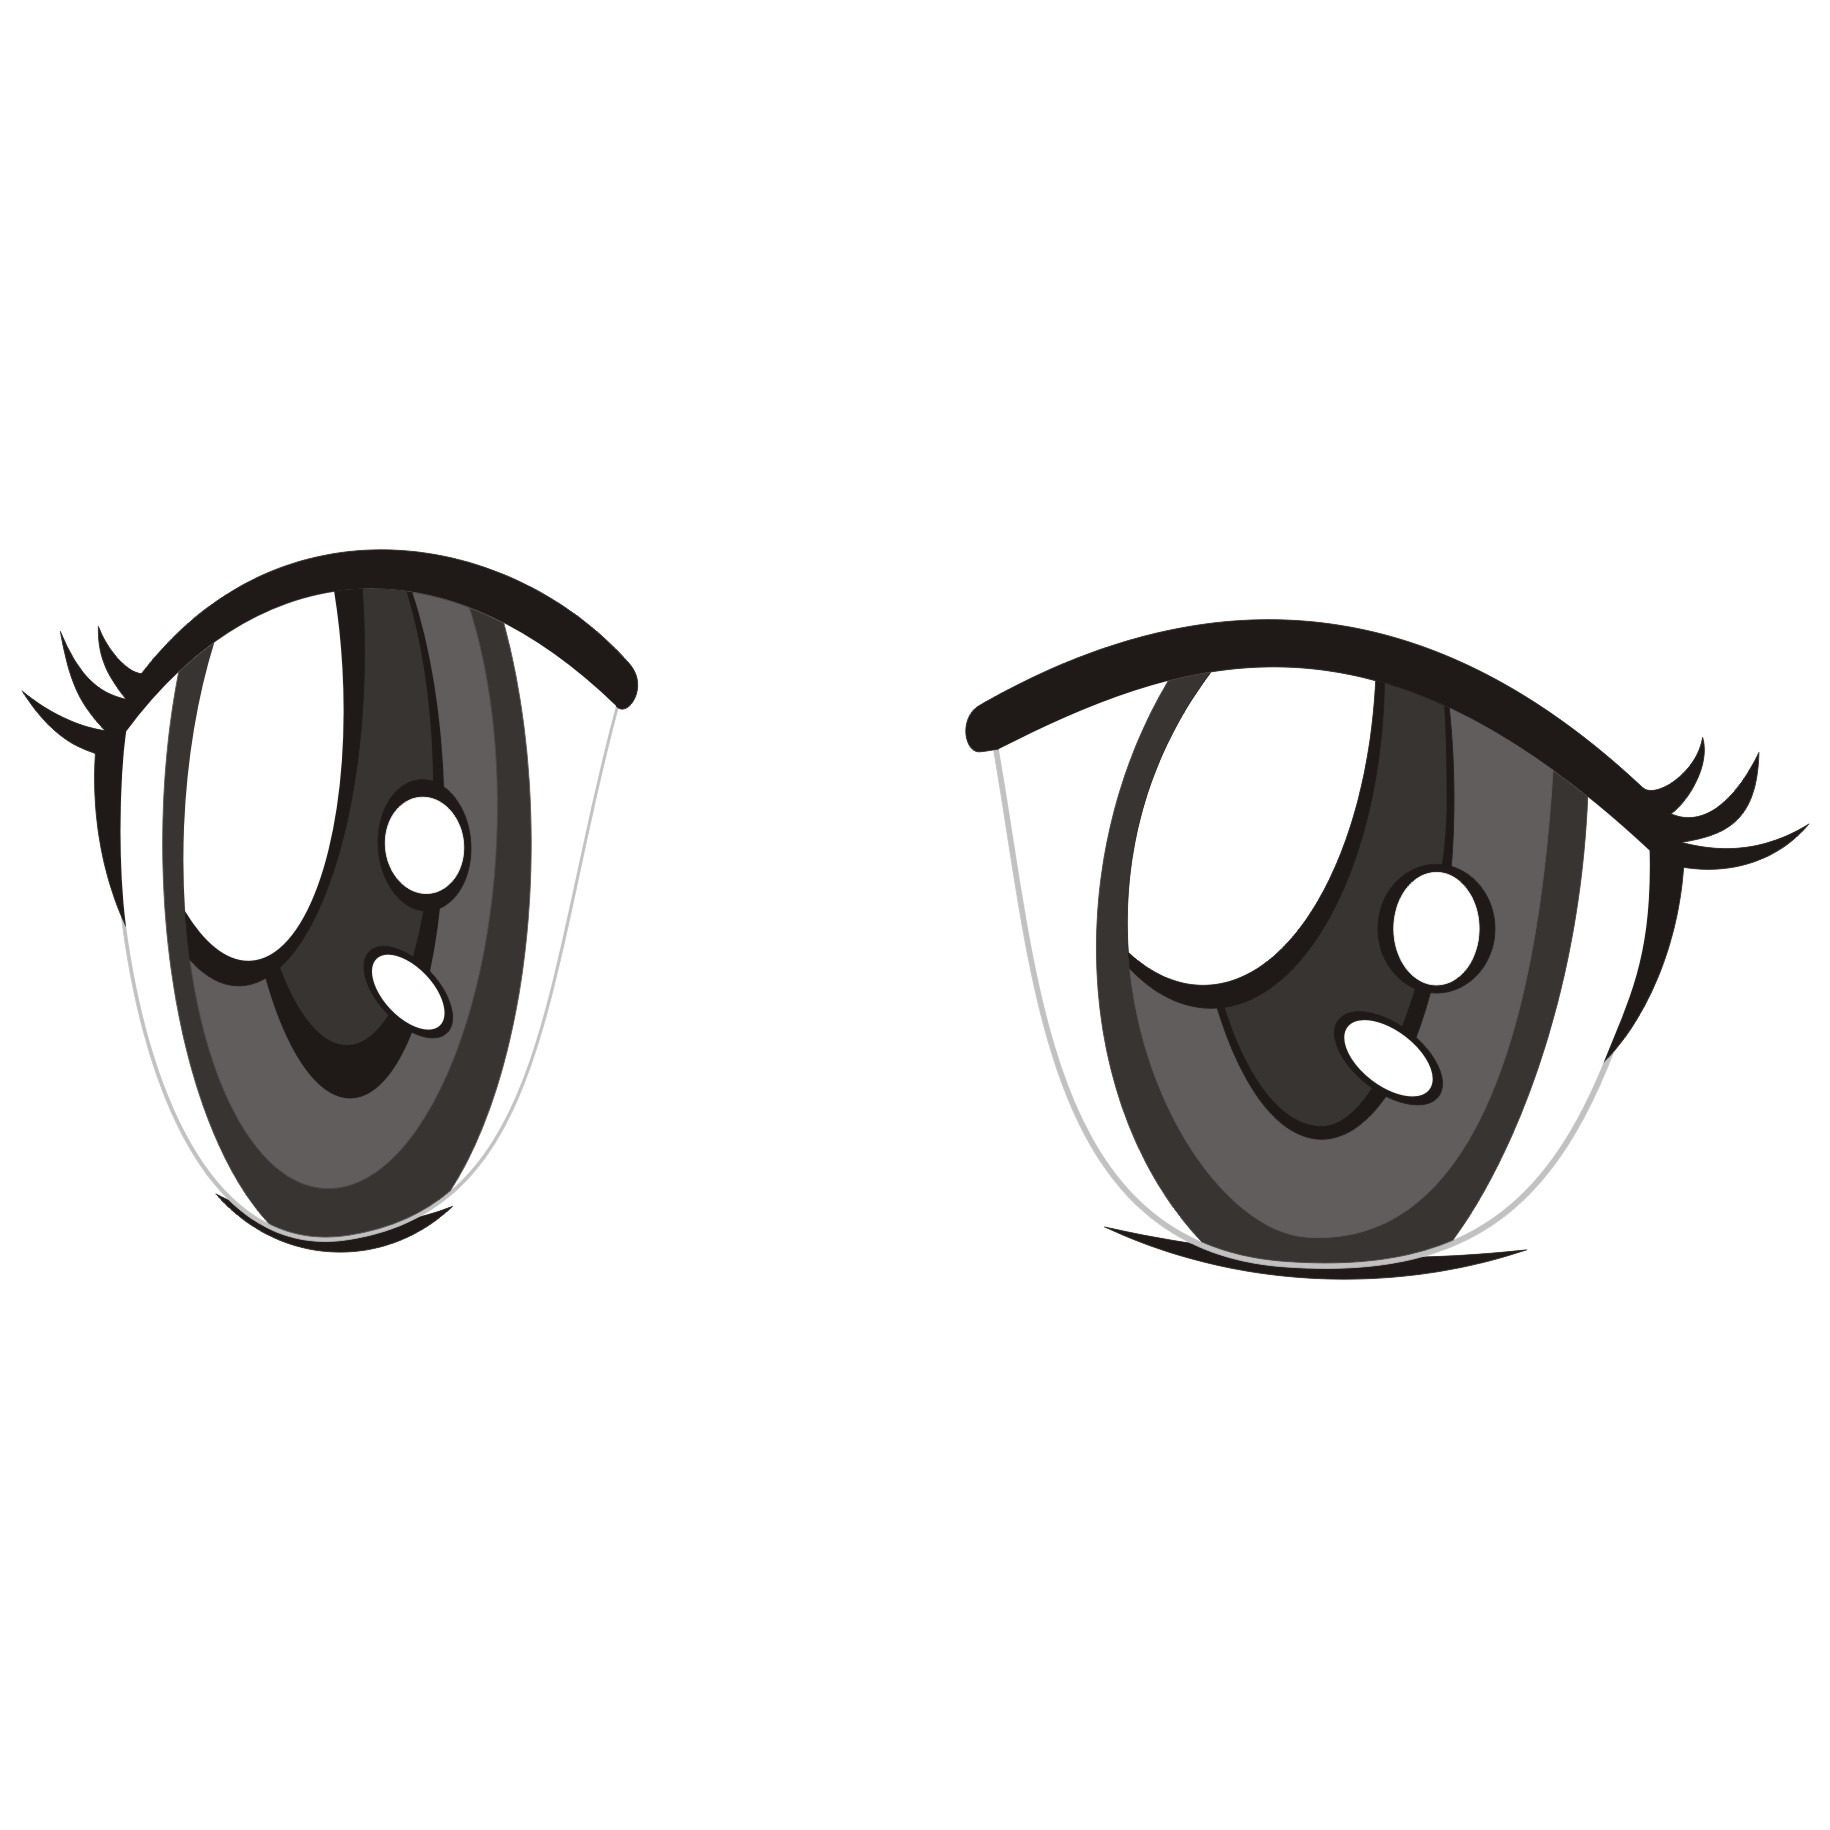 Anime eyes with symbols clipart clipart free stock Vector for free use: Anime eyes - Clip Art Library clipart free stock